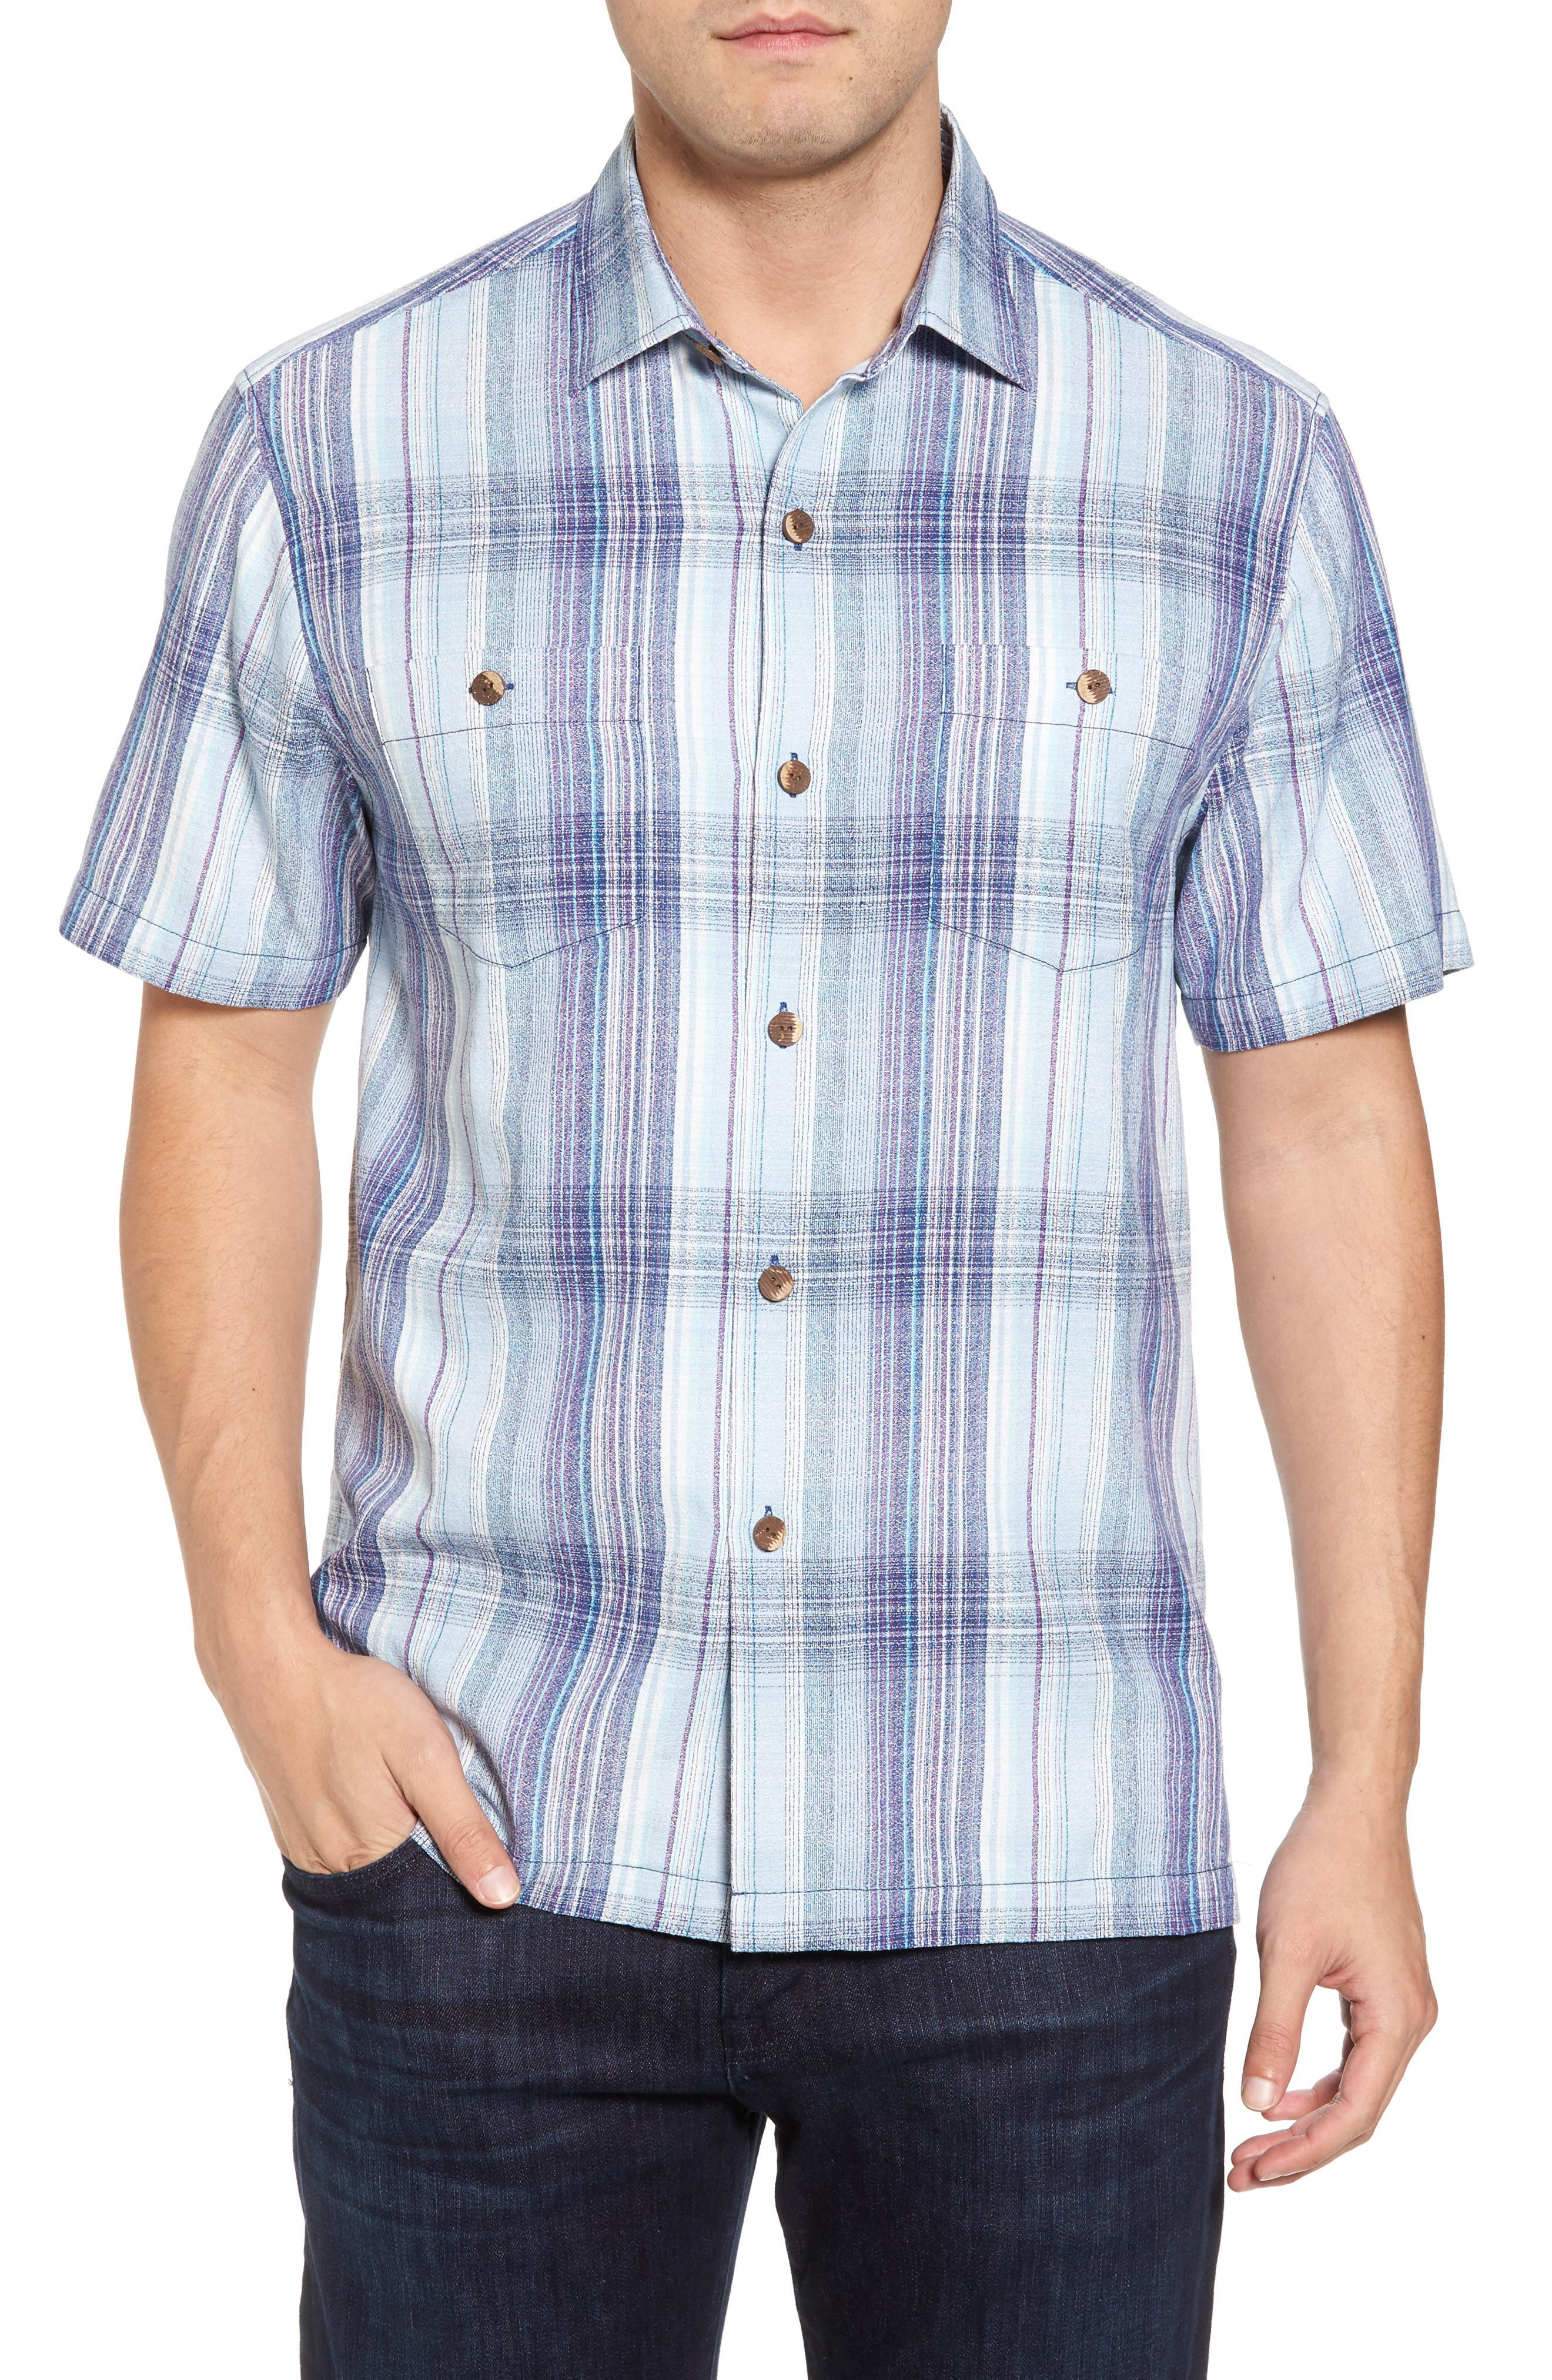 TOMMY BAHAMA,                             Banyan Cay Plaid Silk Blend Camp Shirt,                             Main thumbnail 1, color,                             401